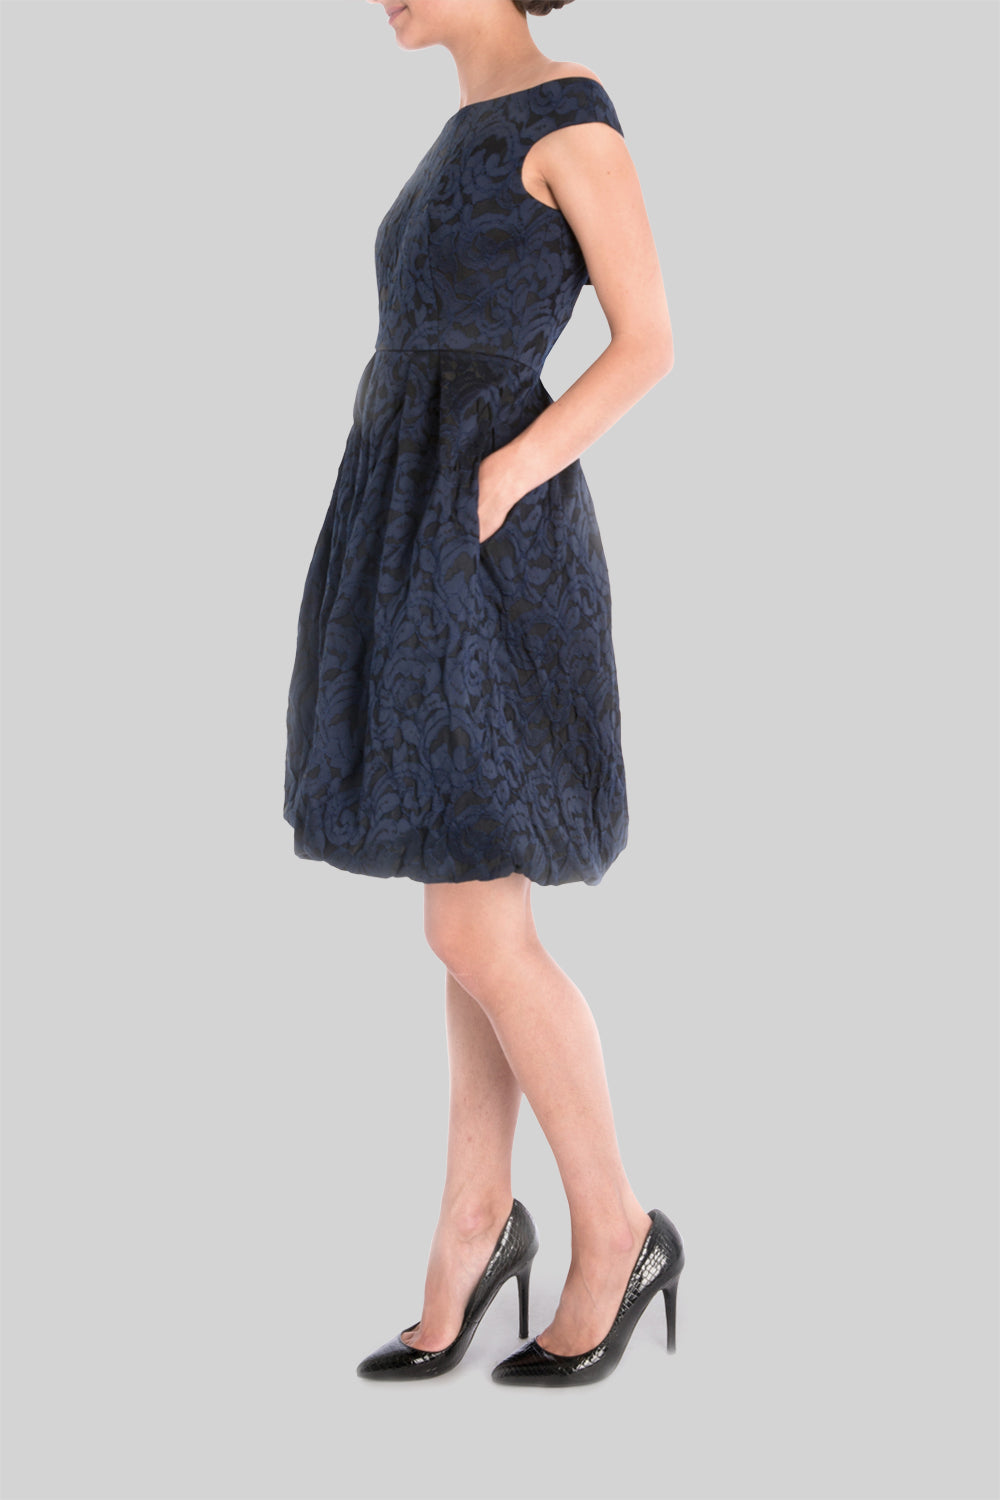 NAVY BROCADE OFF SHOULDER DRESS